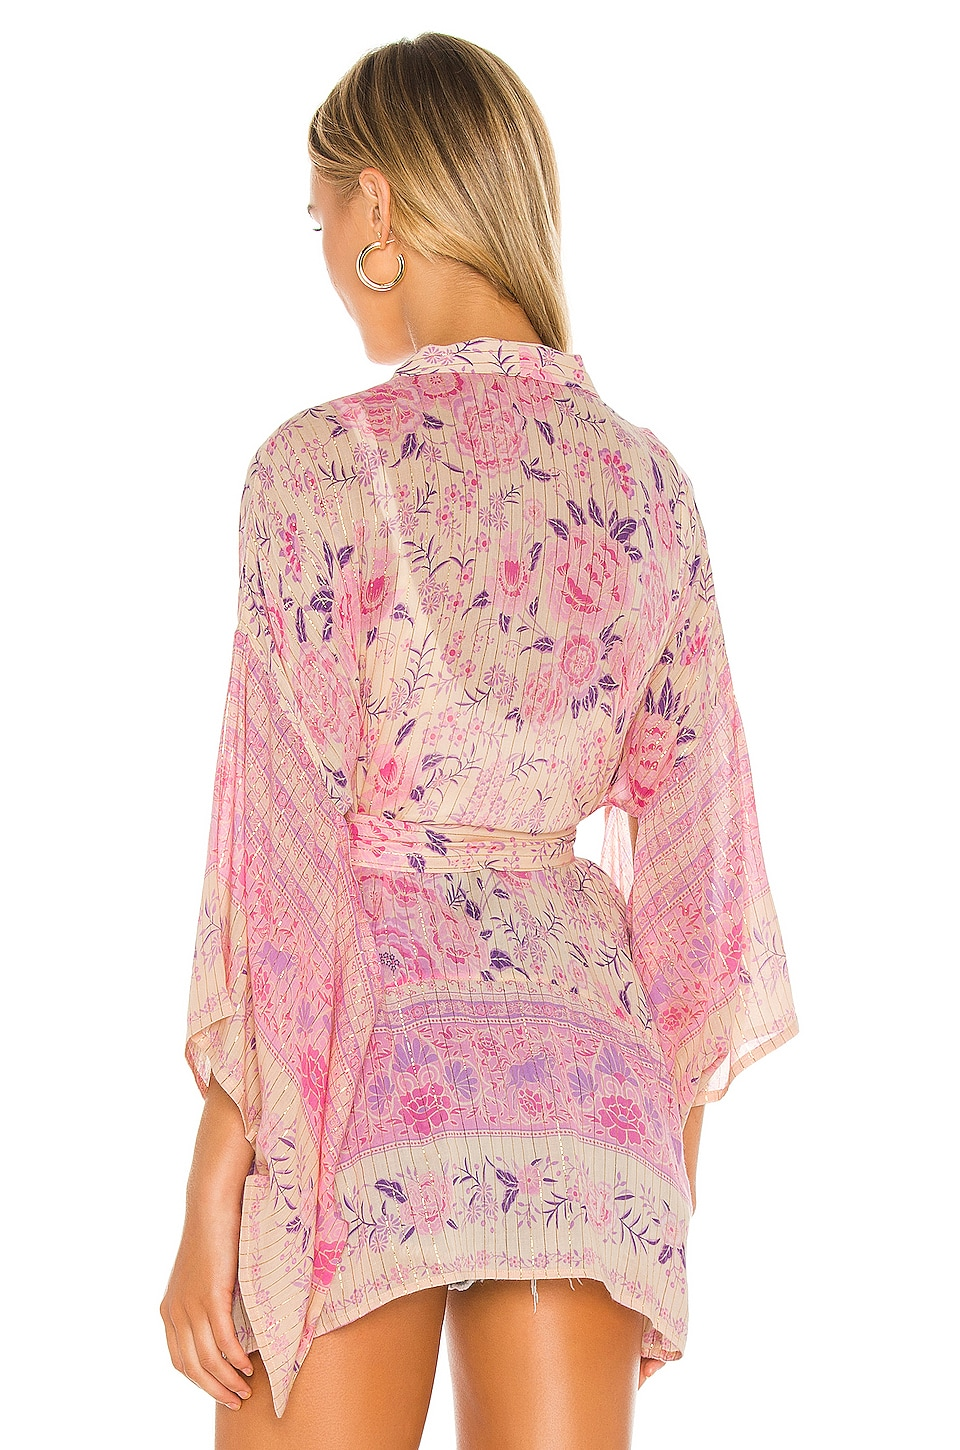 x REVOLVE Mystic Short Robe, view 4, click to view large image.